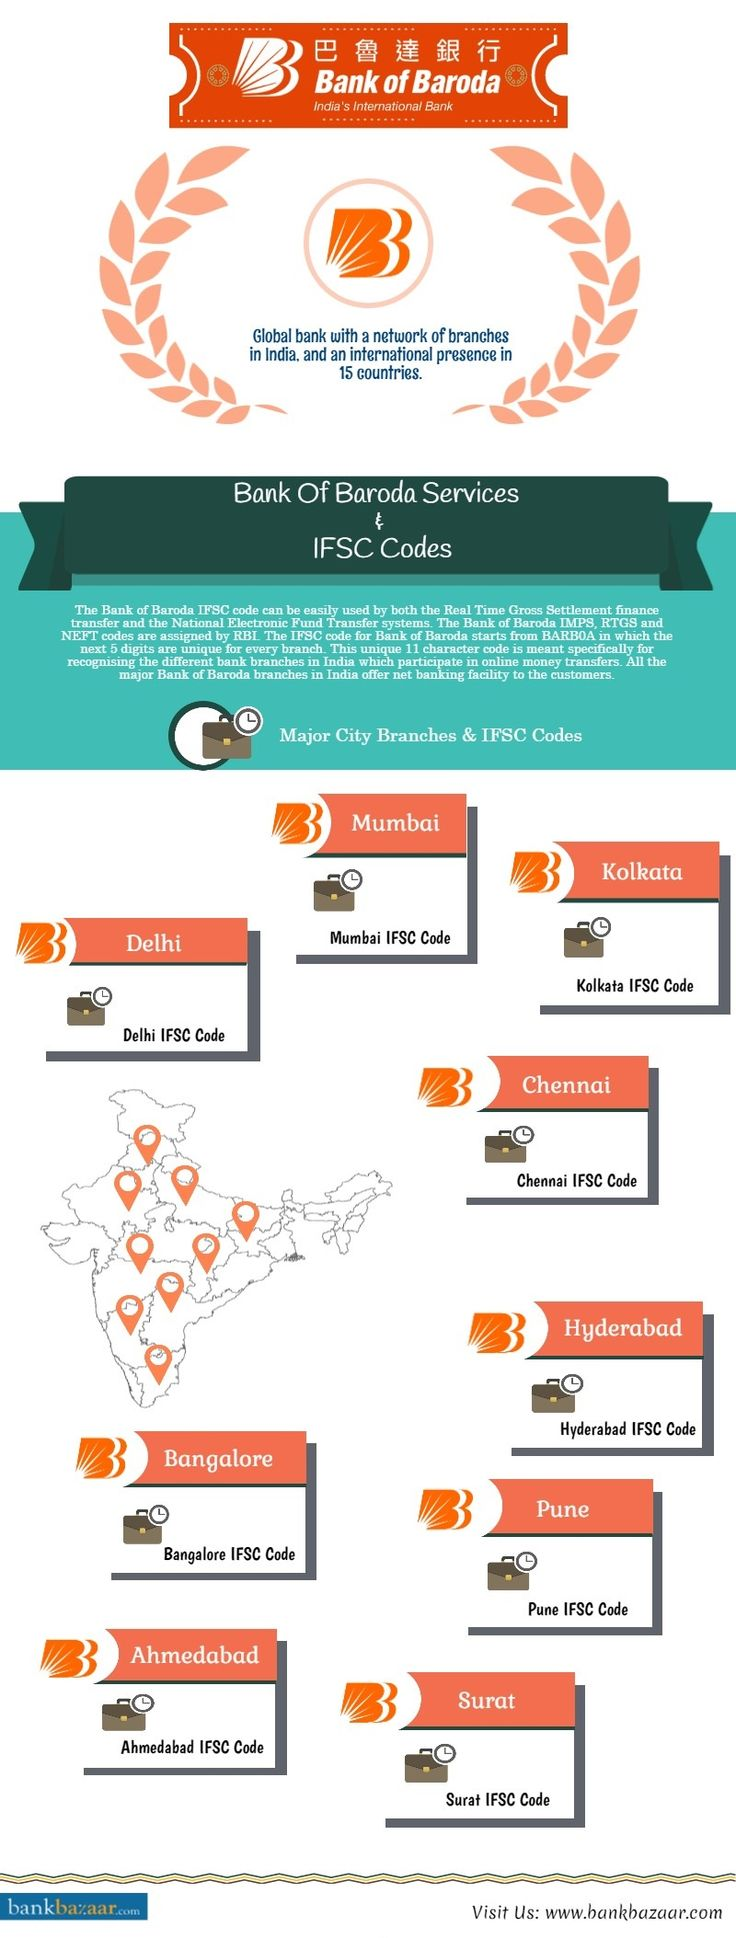 Bank of Baroda IFSC Code - Global Bank with a network of branches in india. And in International Presence in 15 Countries....!         https://magic.piktochart.com/output/6196067-bank-of-baroda